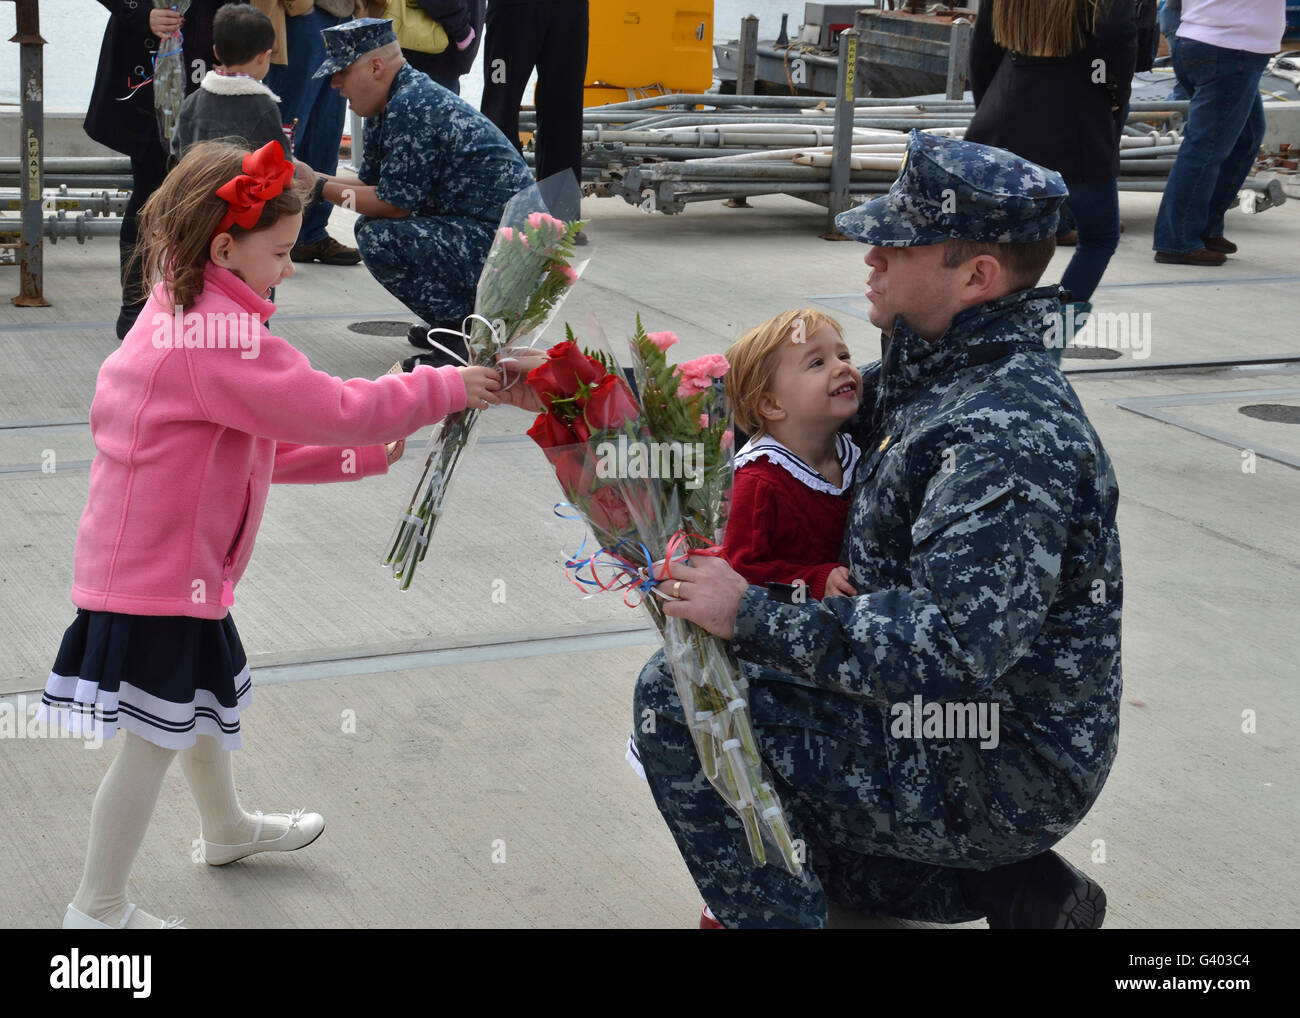 U.S. Navy sailors are greeted by their families during homecoming. - Stock Image